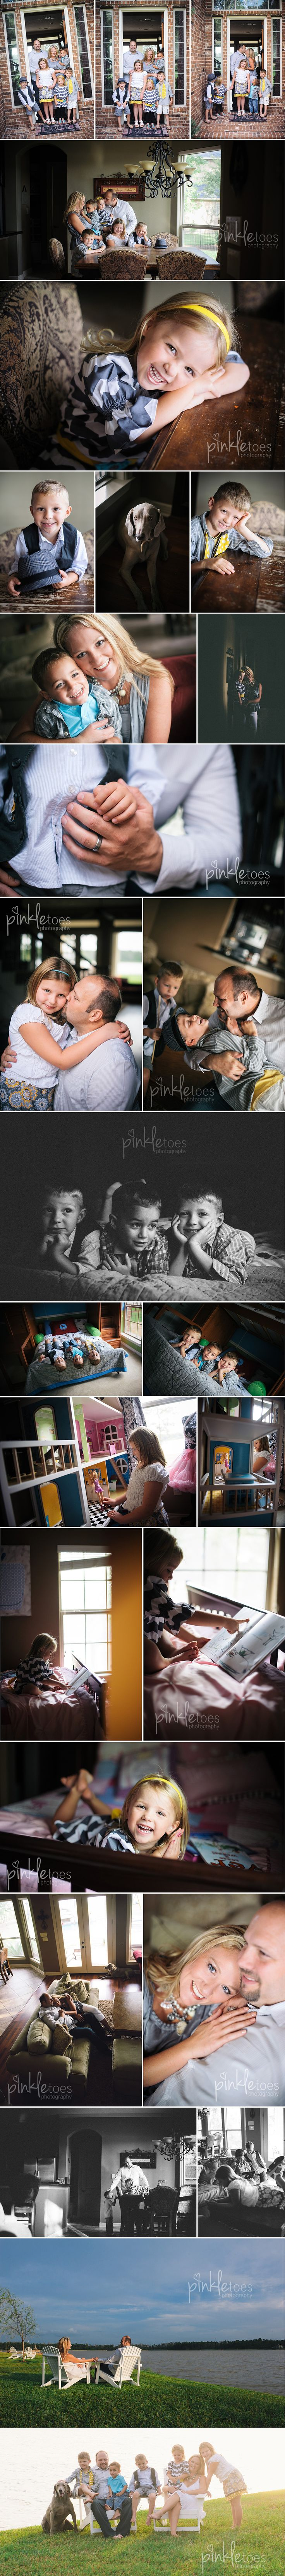 192 best Family Photography images on Pinterest | Family pictures ...